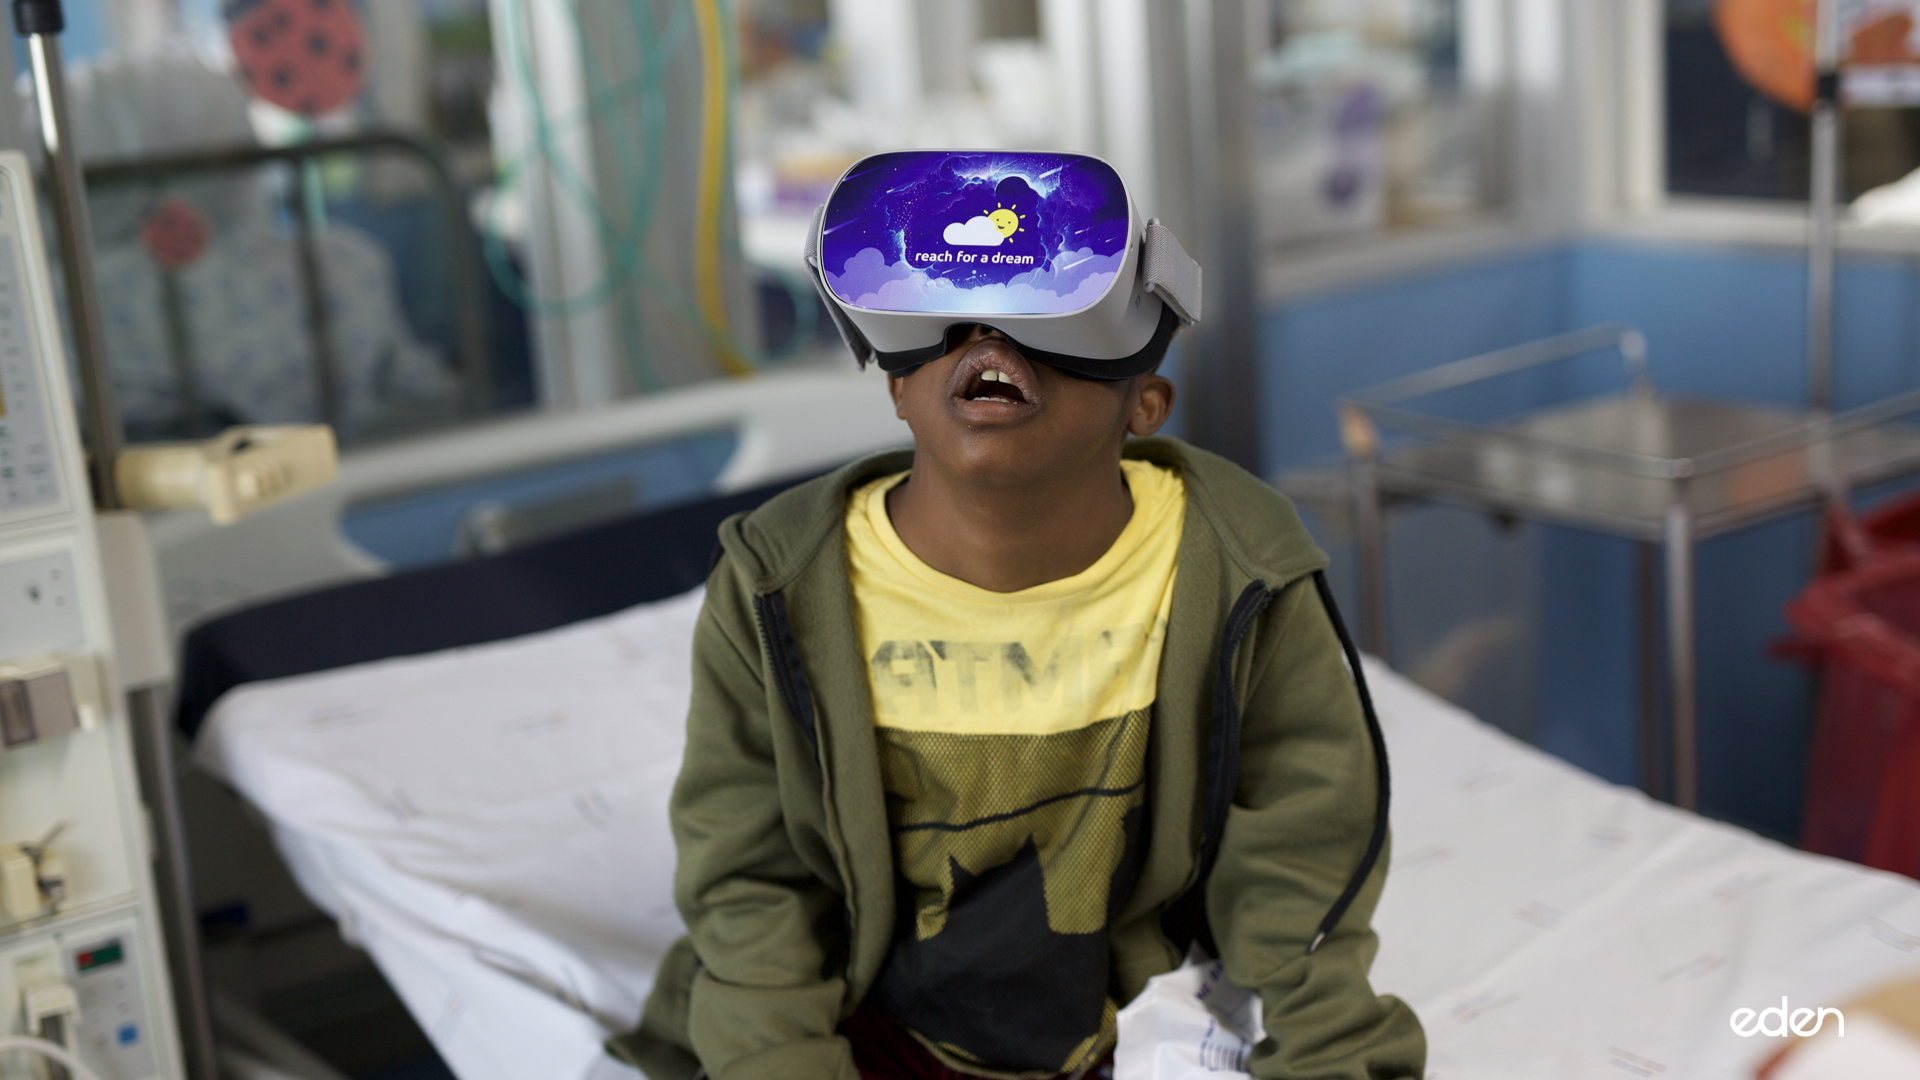 VR gives kids the power to dream with their eyes wide open